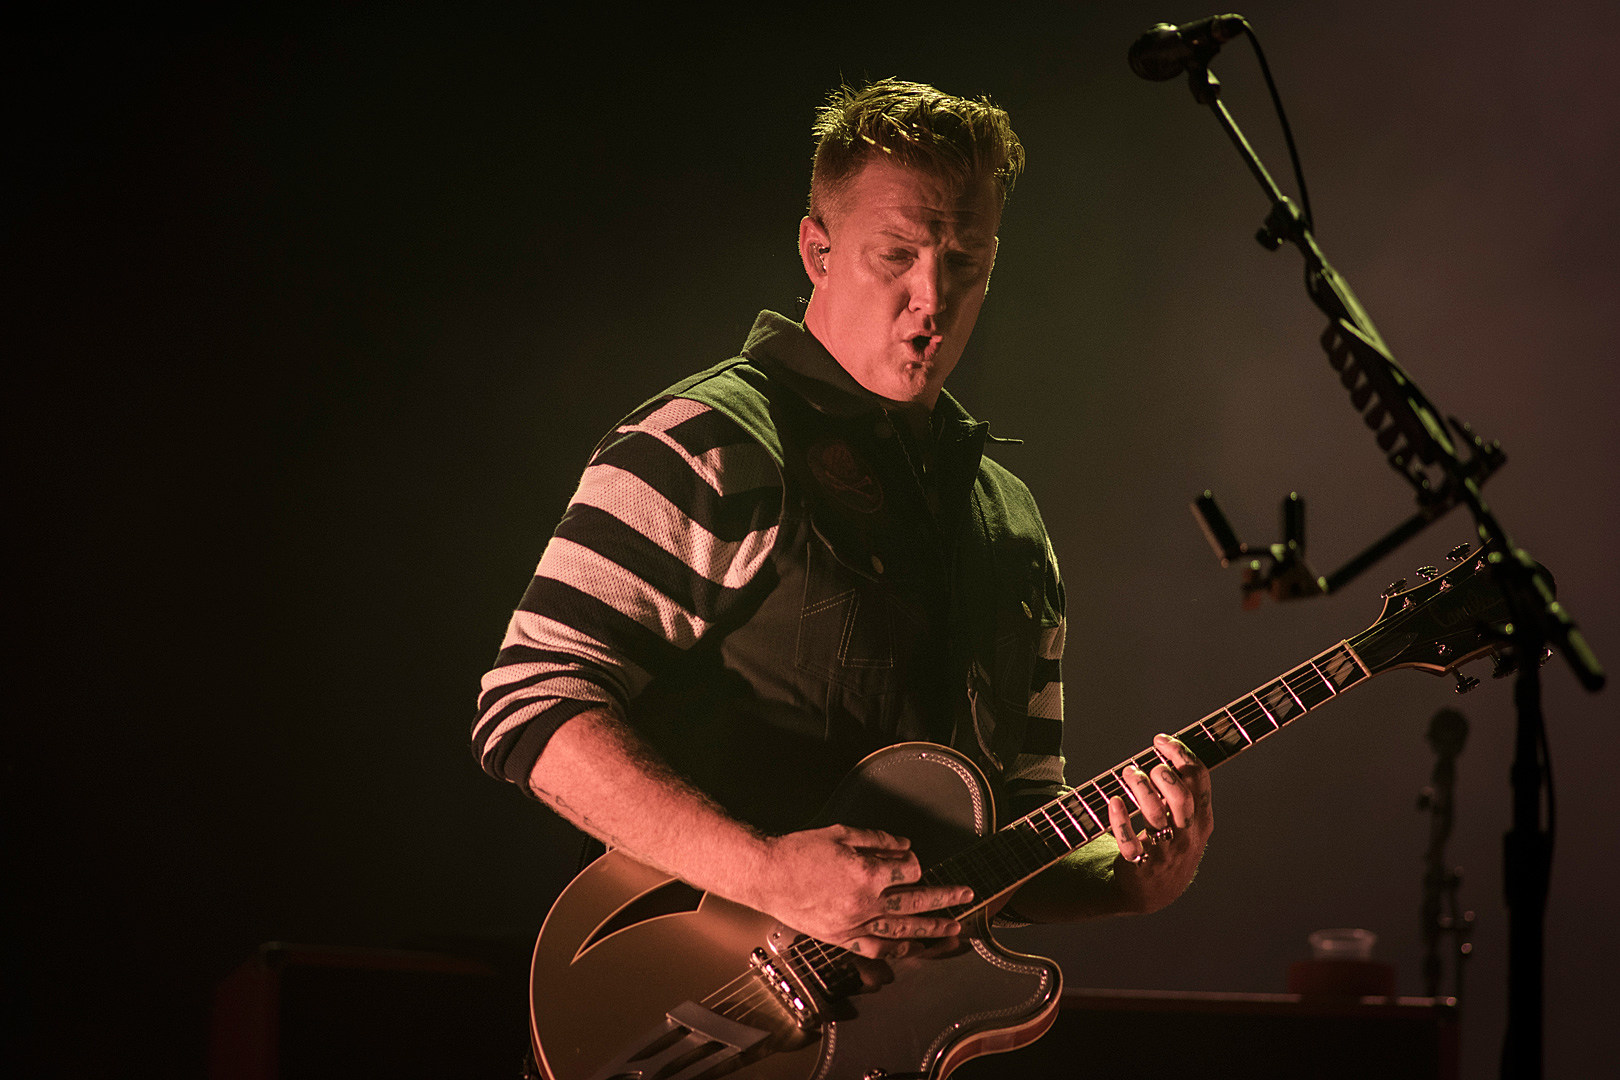 Queens of the Stone Age's Josh Homme Ready to Take a Risk for 'Uptempo' New Album